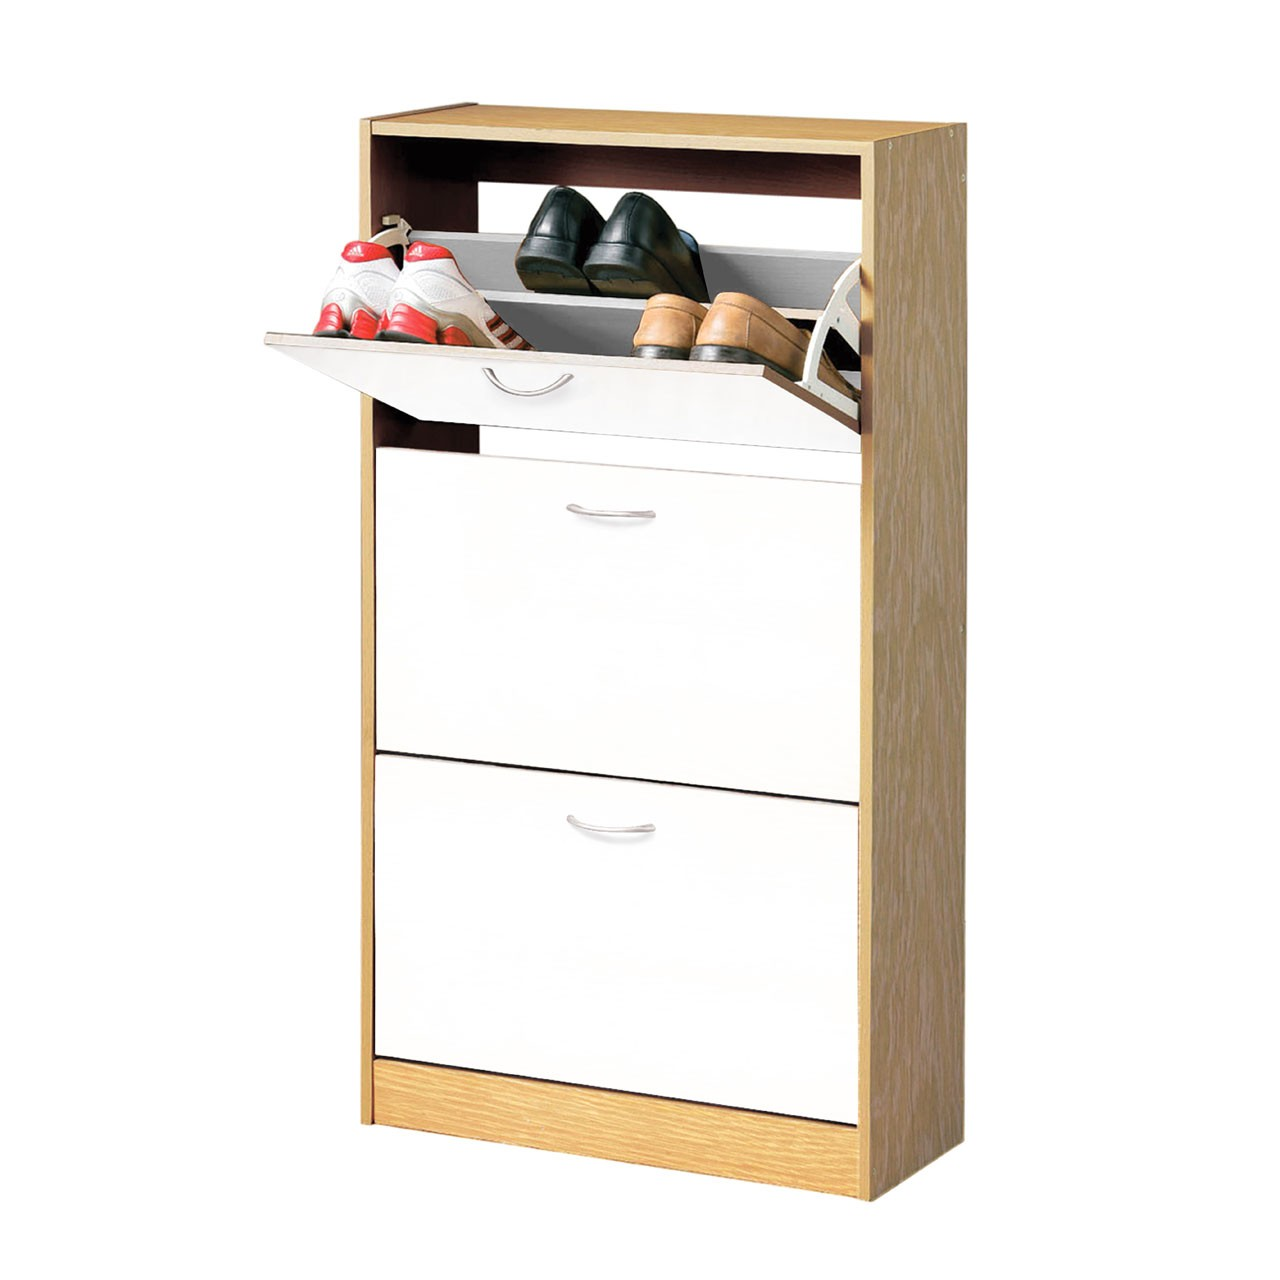 Prime Furnishing 3 Drawer Wood Shoe Cupboard - Oak/White